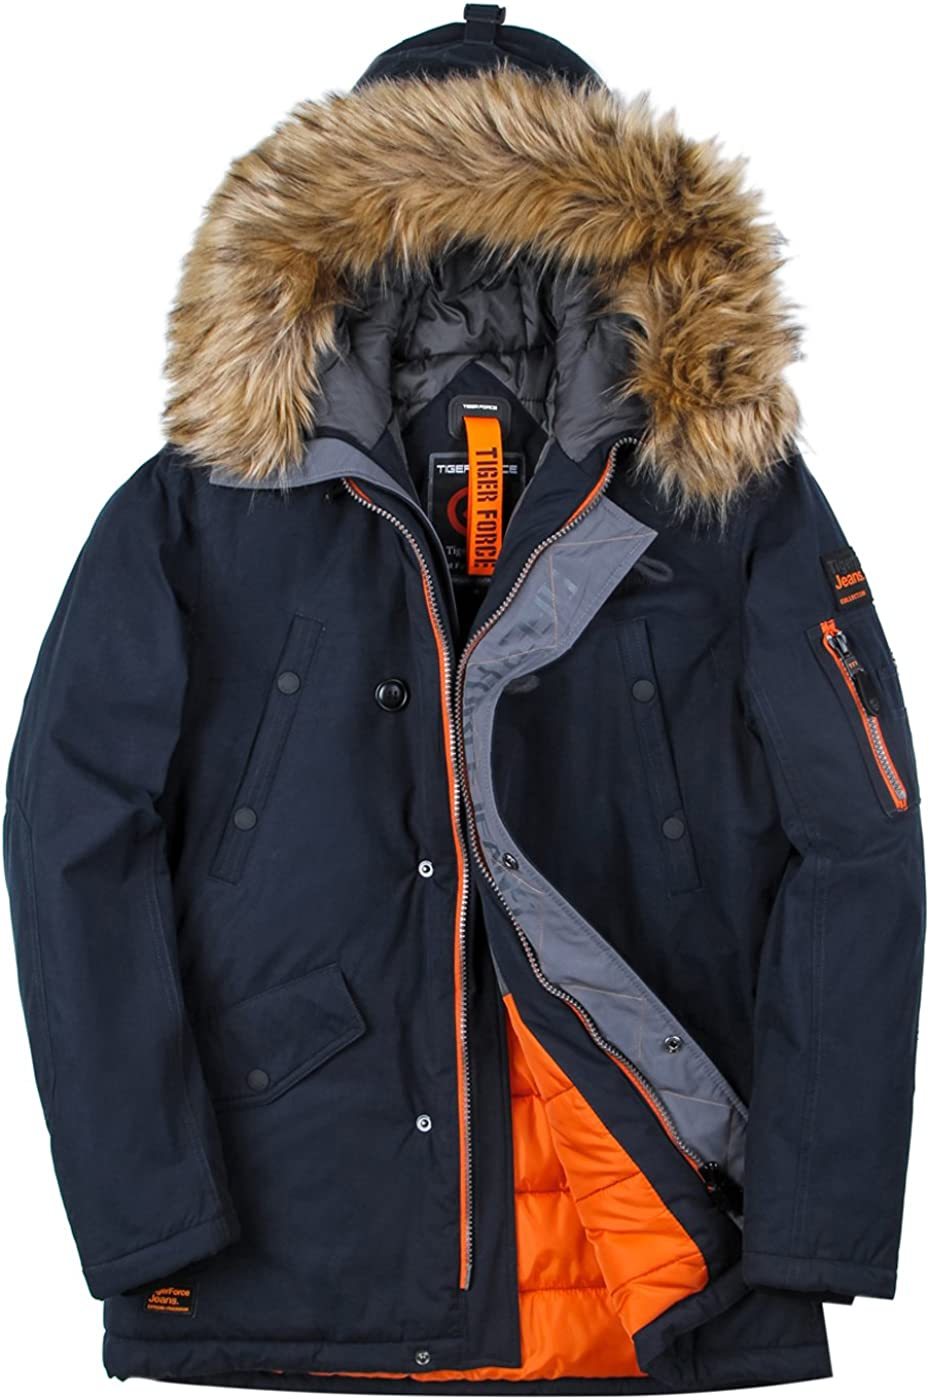 Import TIGER FORCE Parka Coat Winter Waterproof Hooded Free Shipping Cheap Bargain Gift Jacket Men Quilt